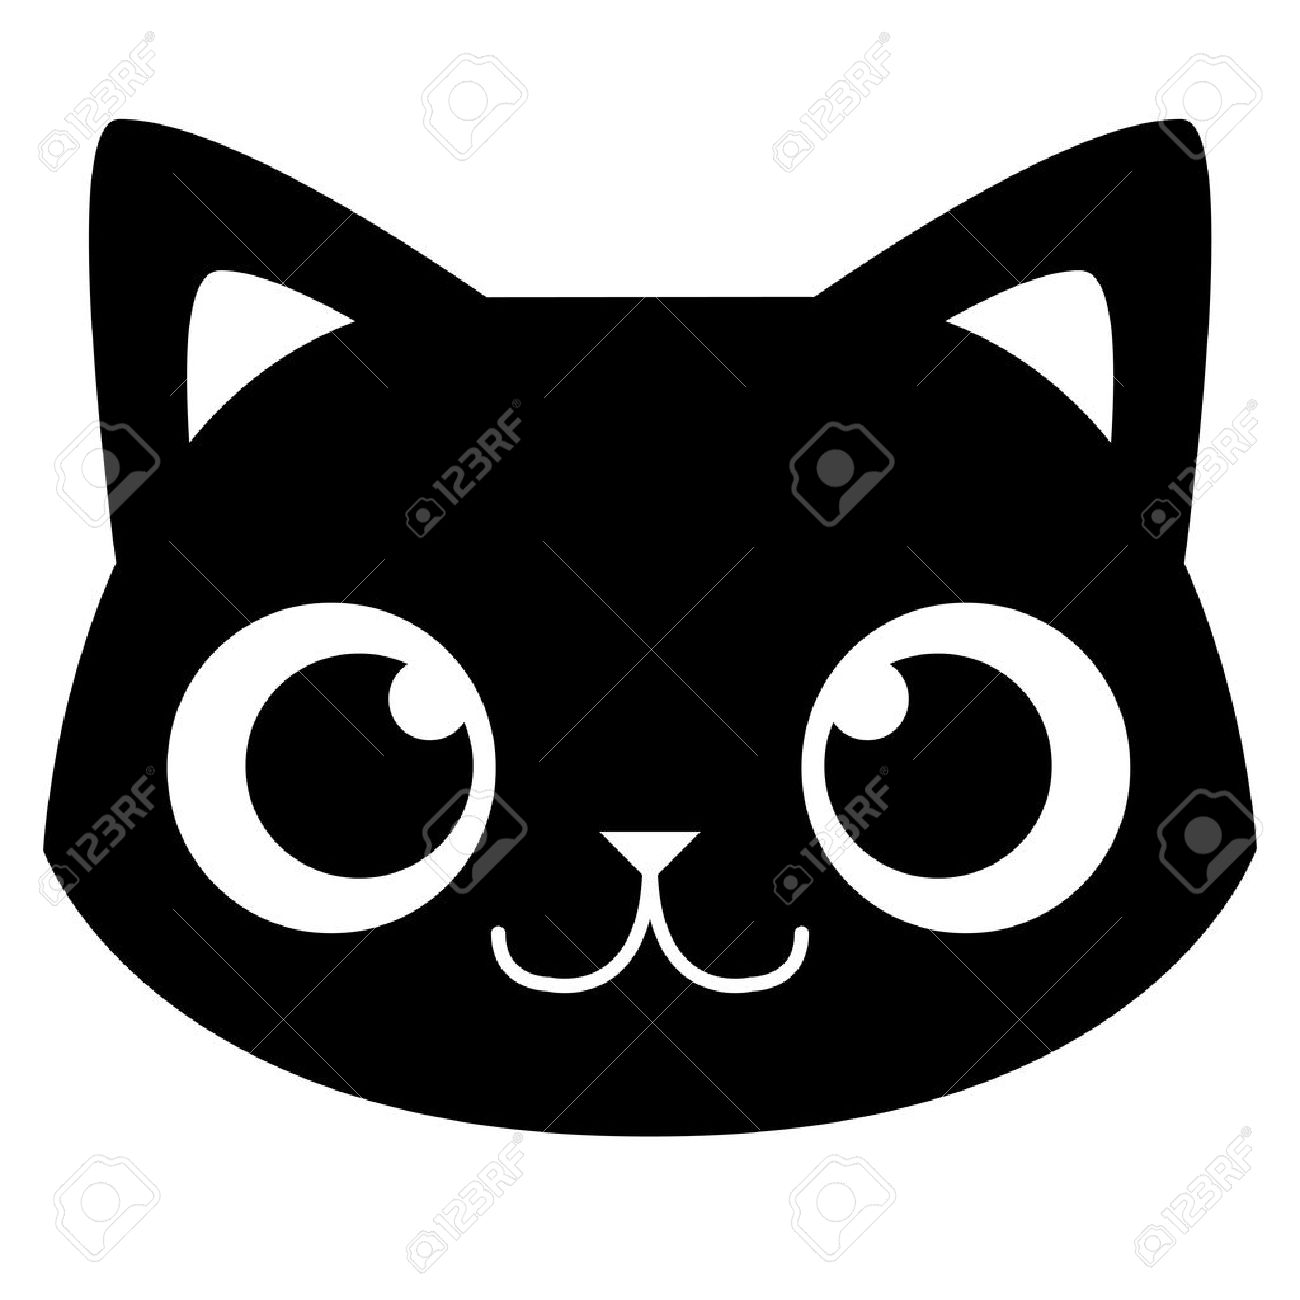 Vector Cartoon Adorable Cat Face Isolated Illustration - 30330242